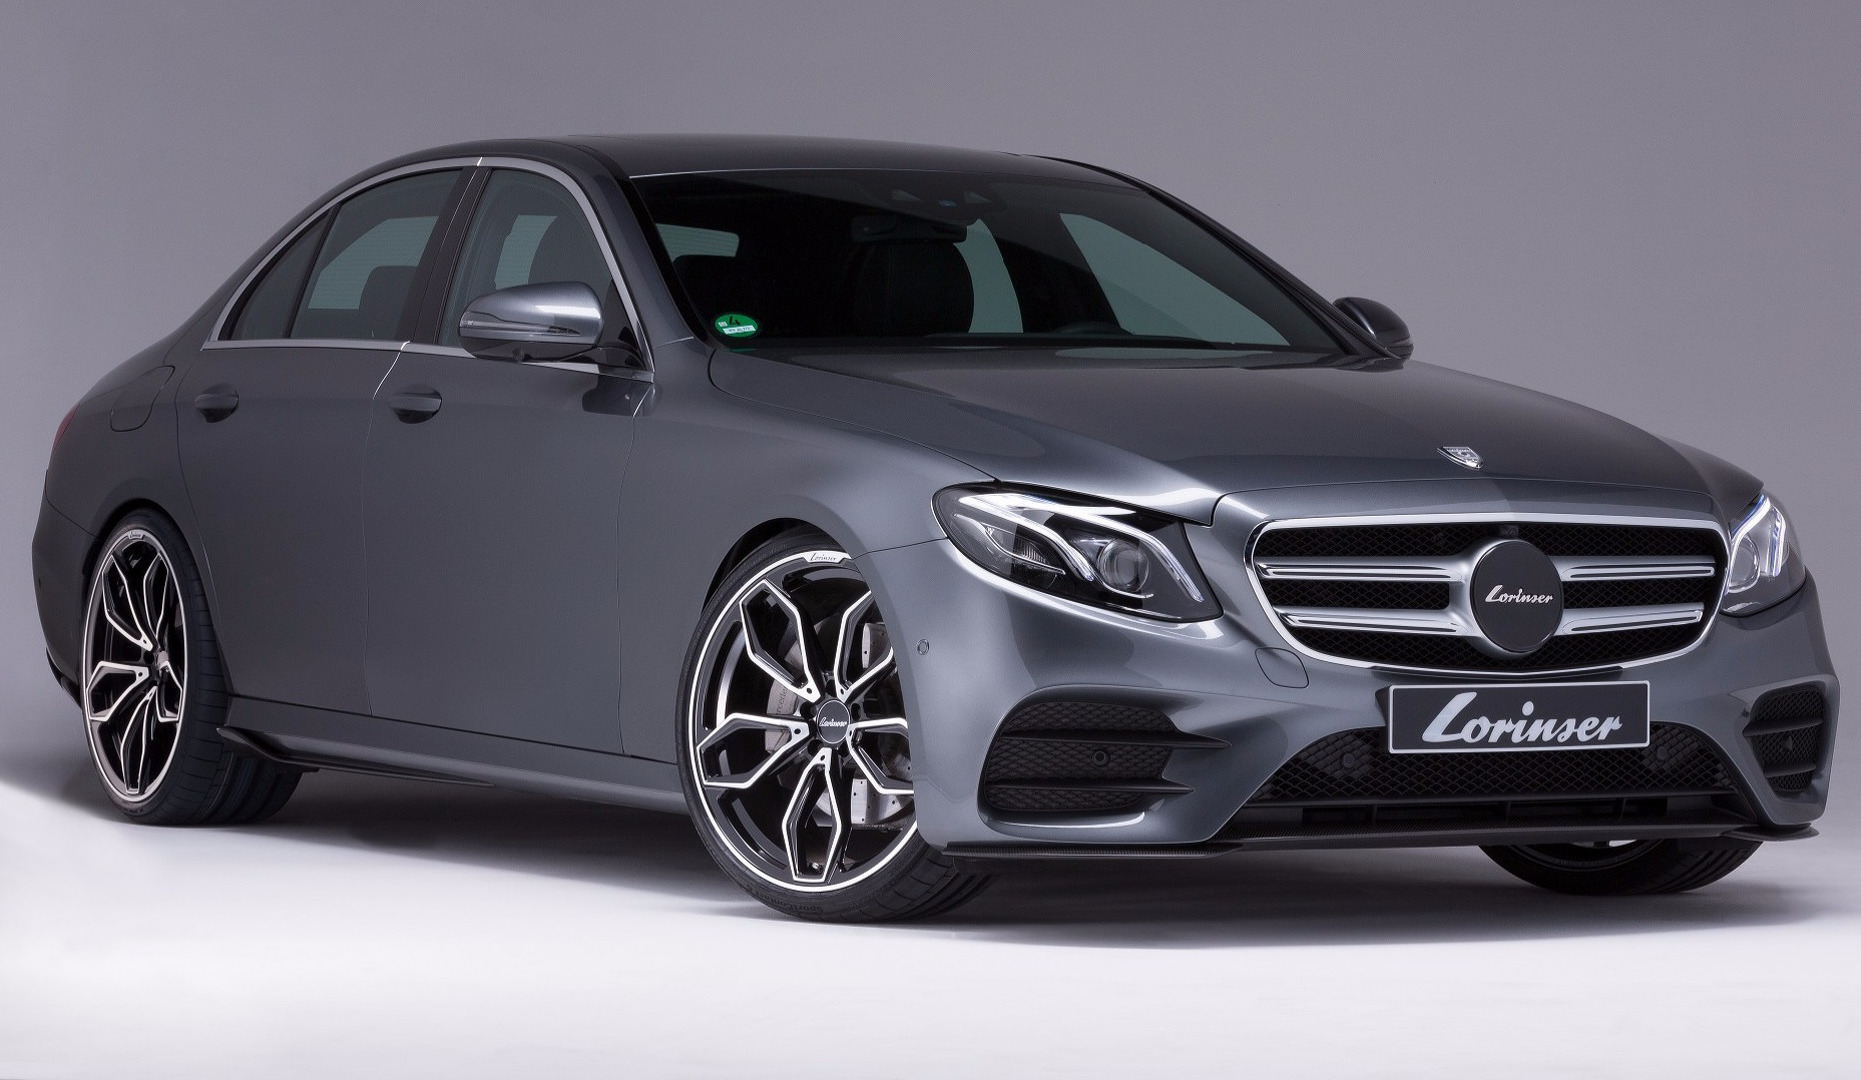 Lorinser gives new mercedes benz e class subtle tune for New mercedes benz e350